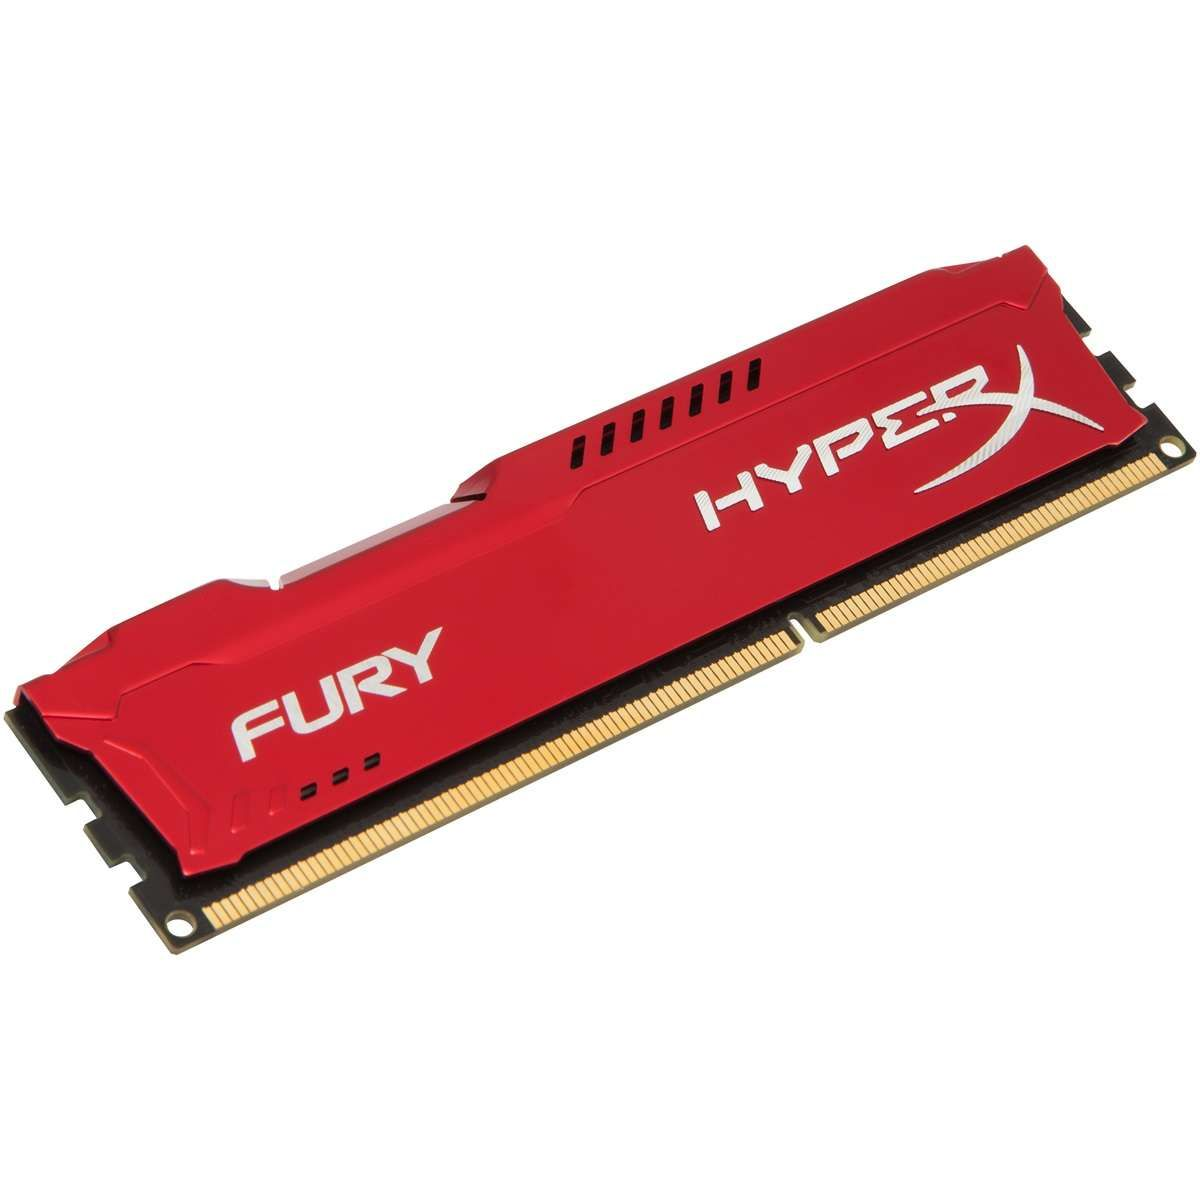 Memória Kingston HyperX FURY DDR3 8GB 1866Mhz CL10 Red Series - HX318C10FR/8